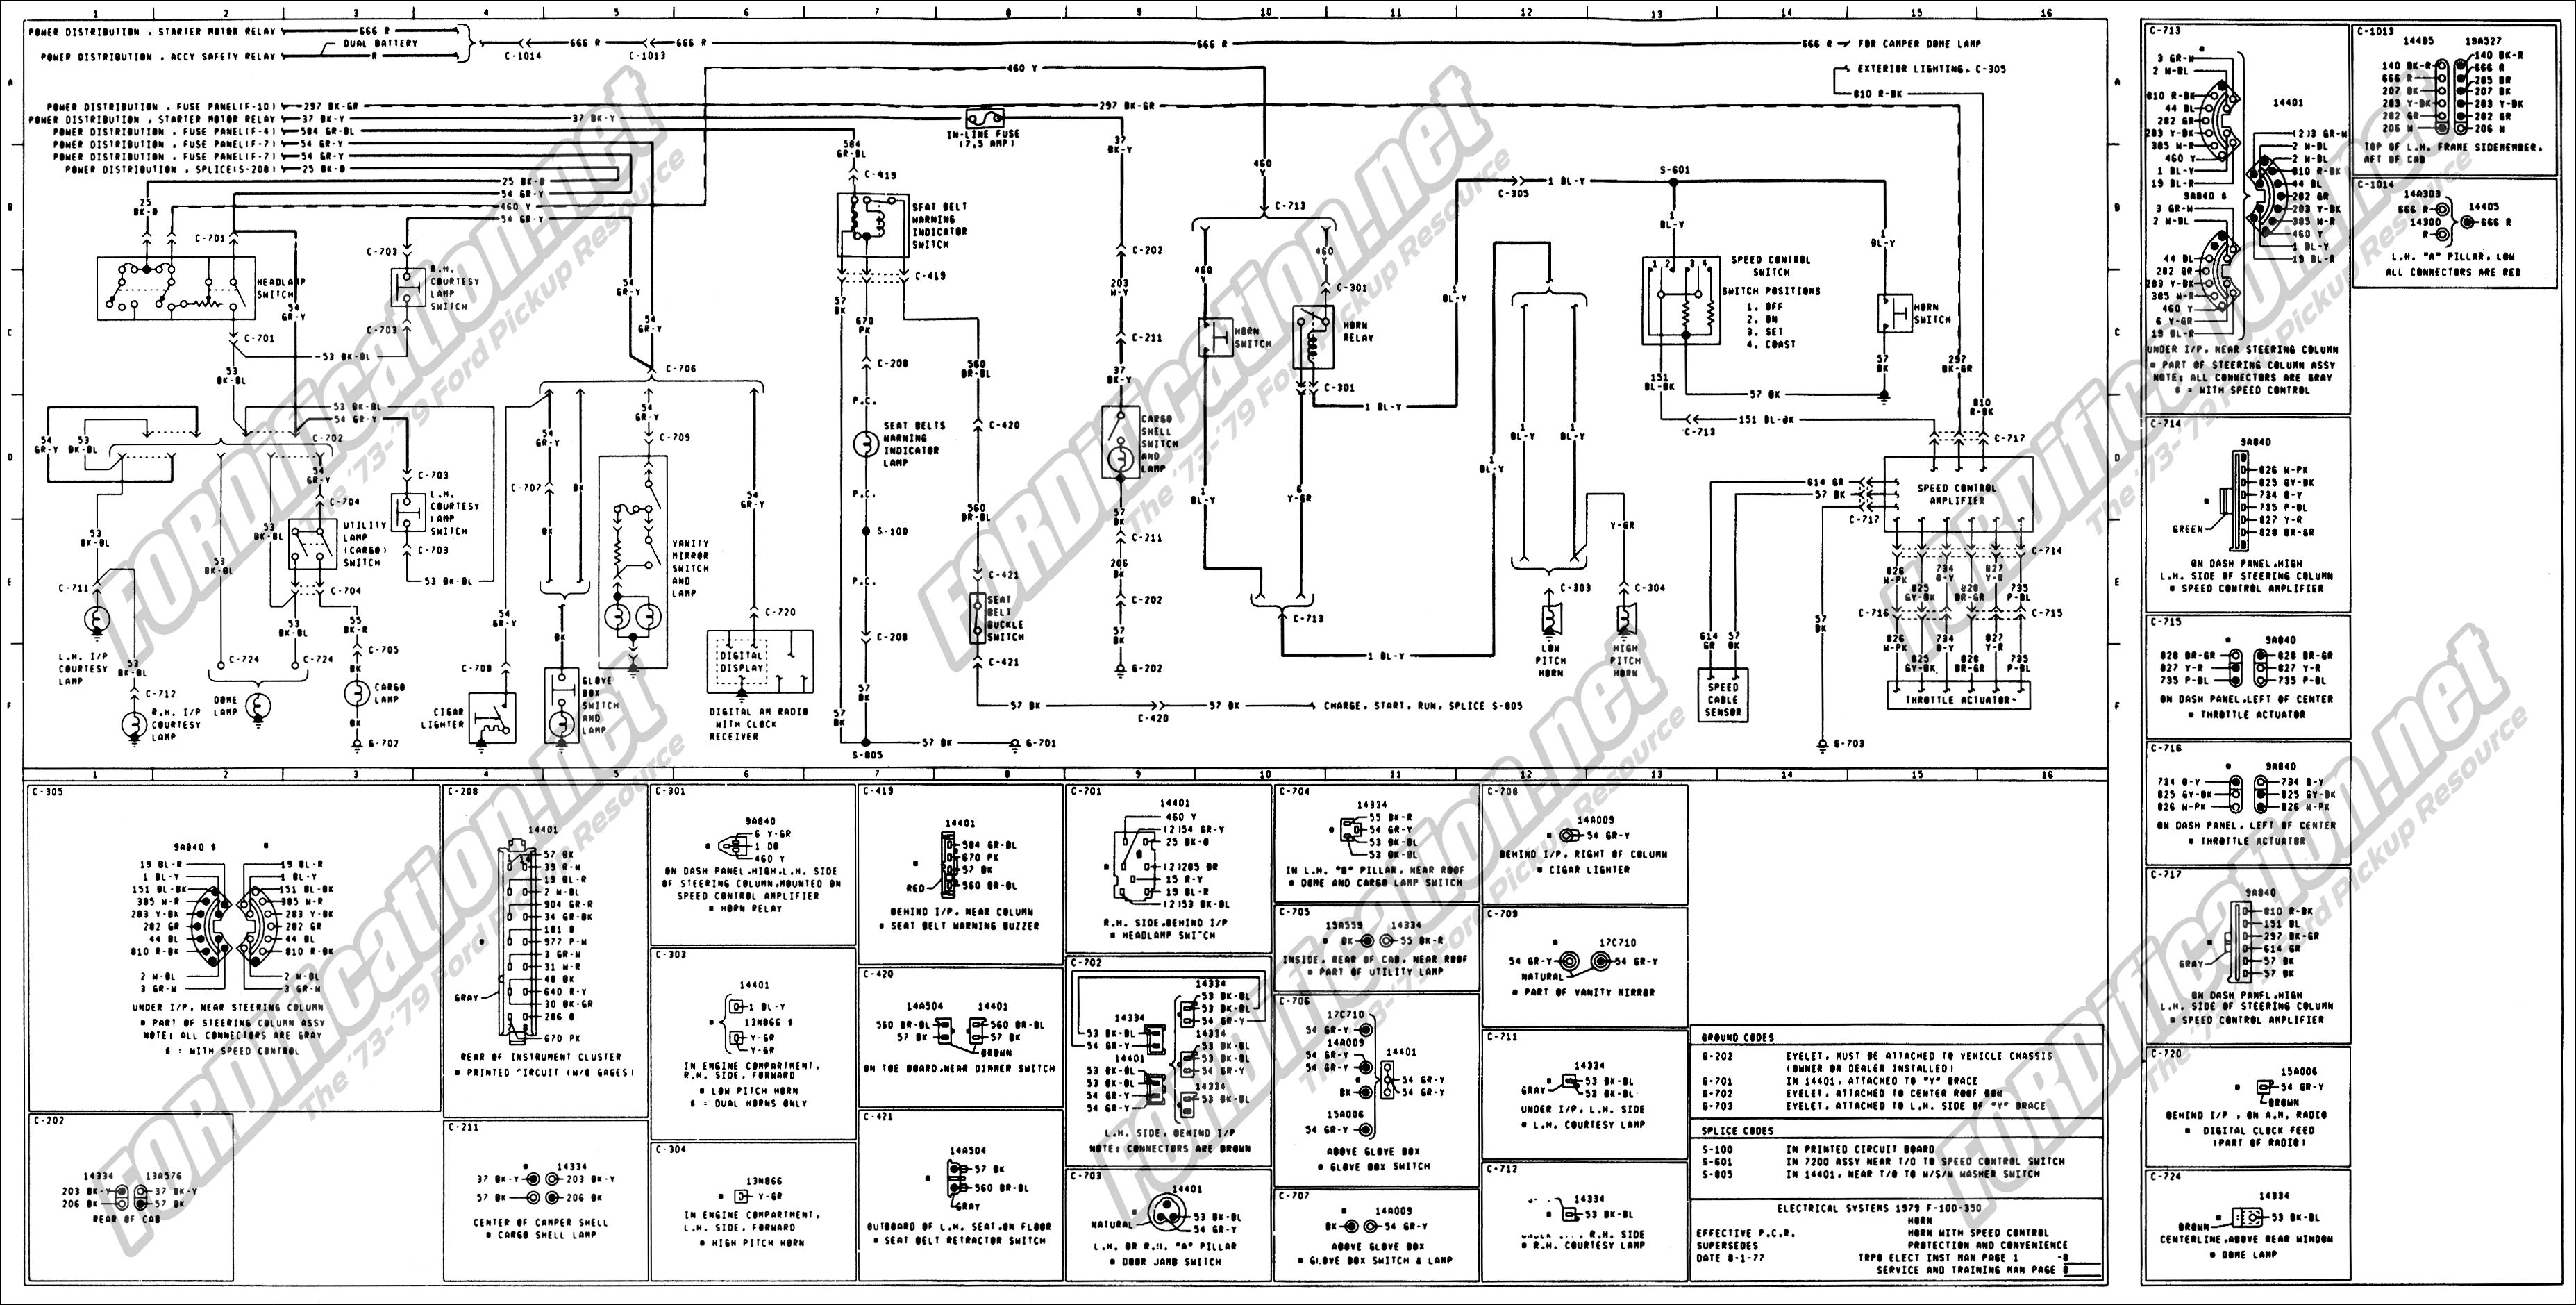 wiring_79master_8of9 wiring diagram ford f250 readingrat net 73 ford f250 wiring diagram at nearapp.co